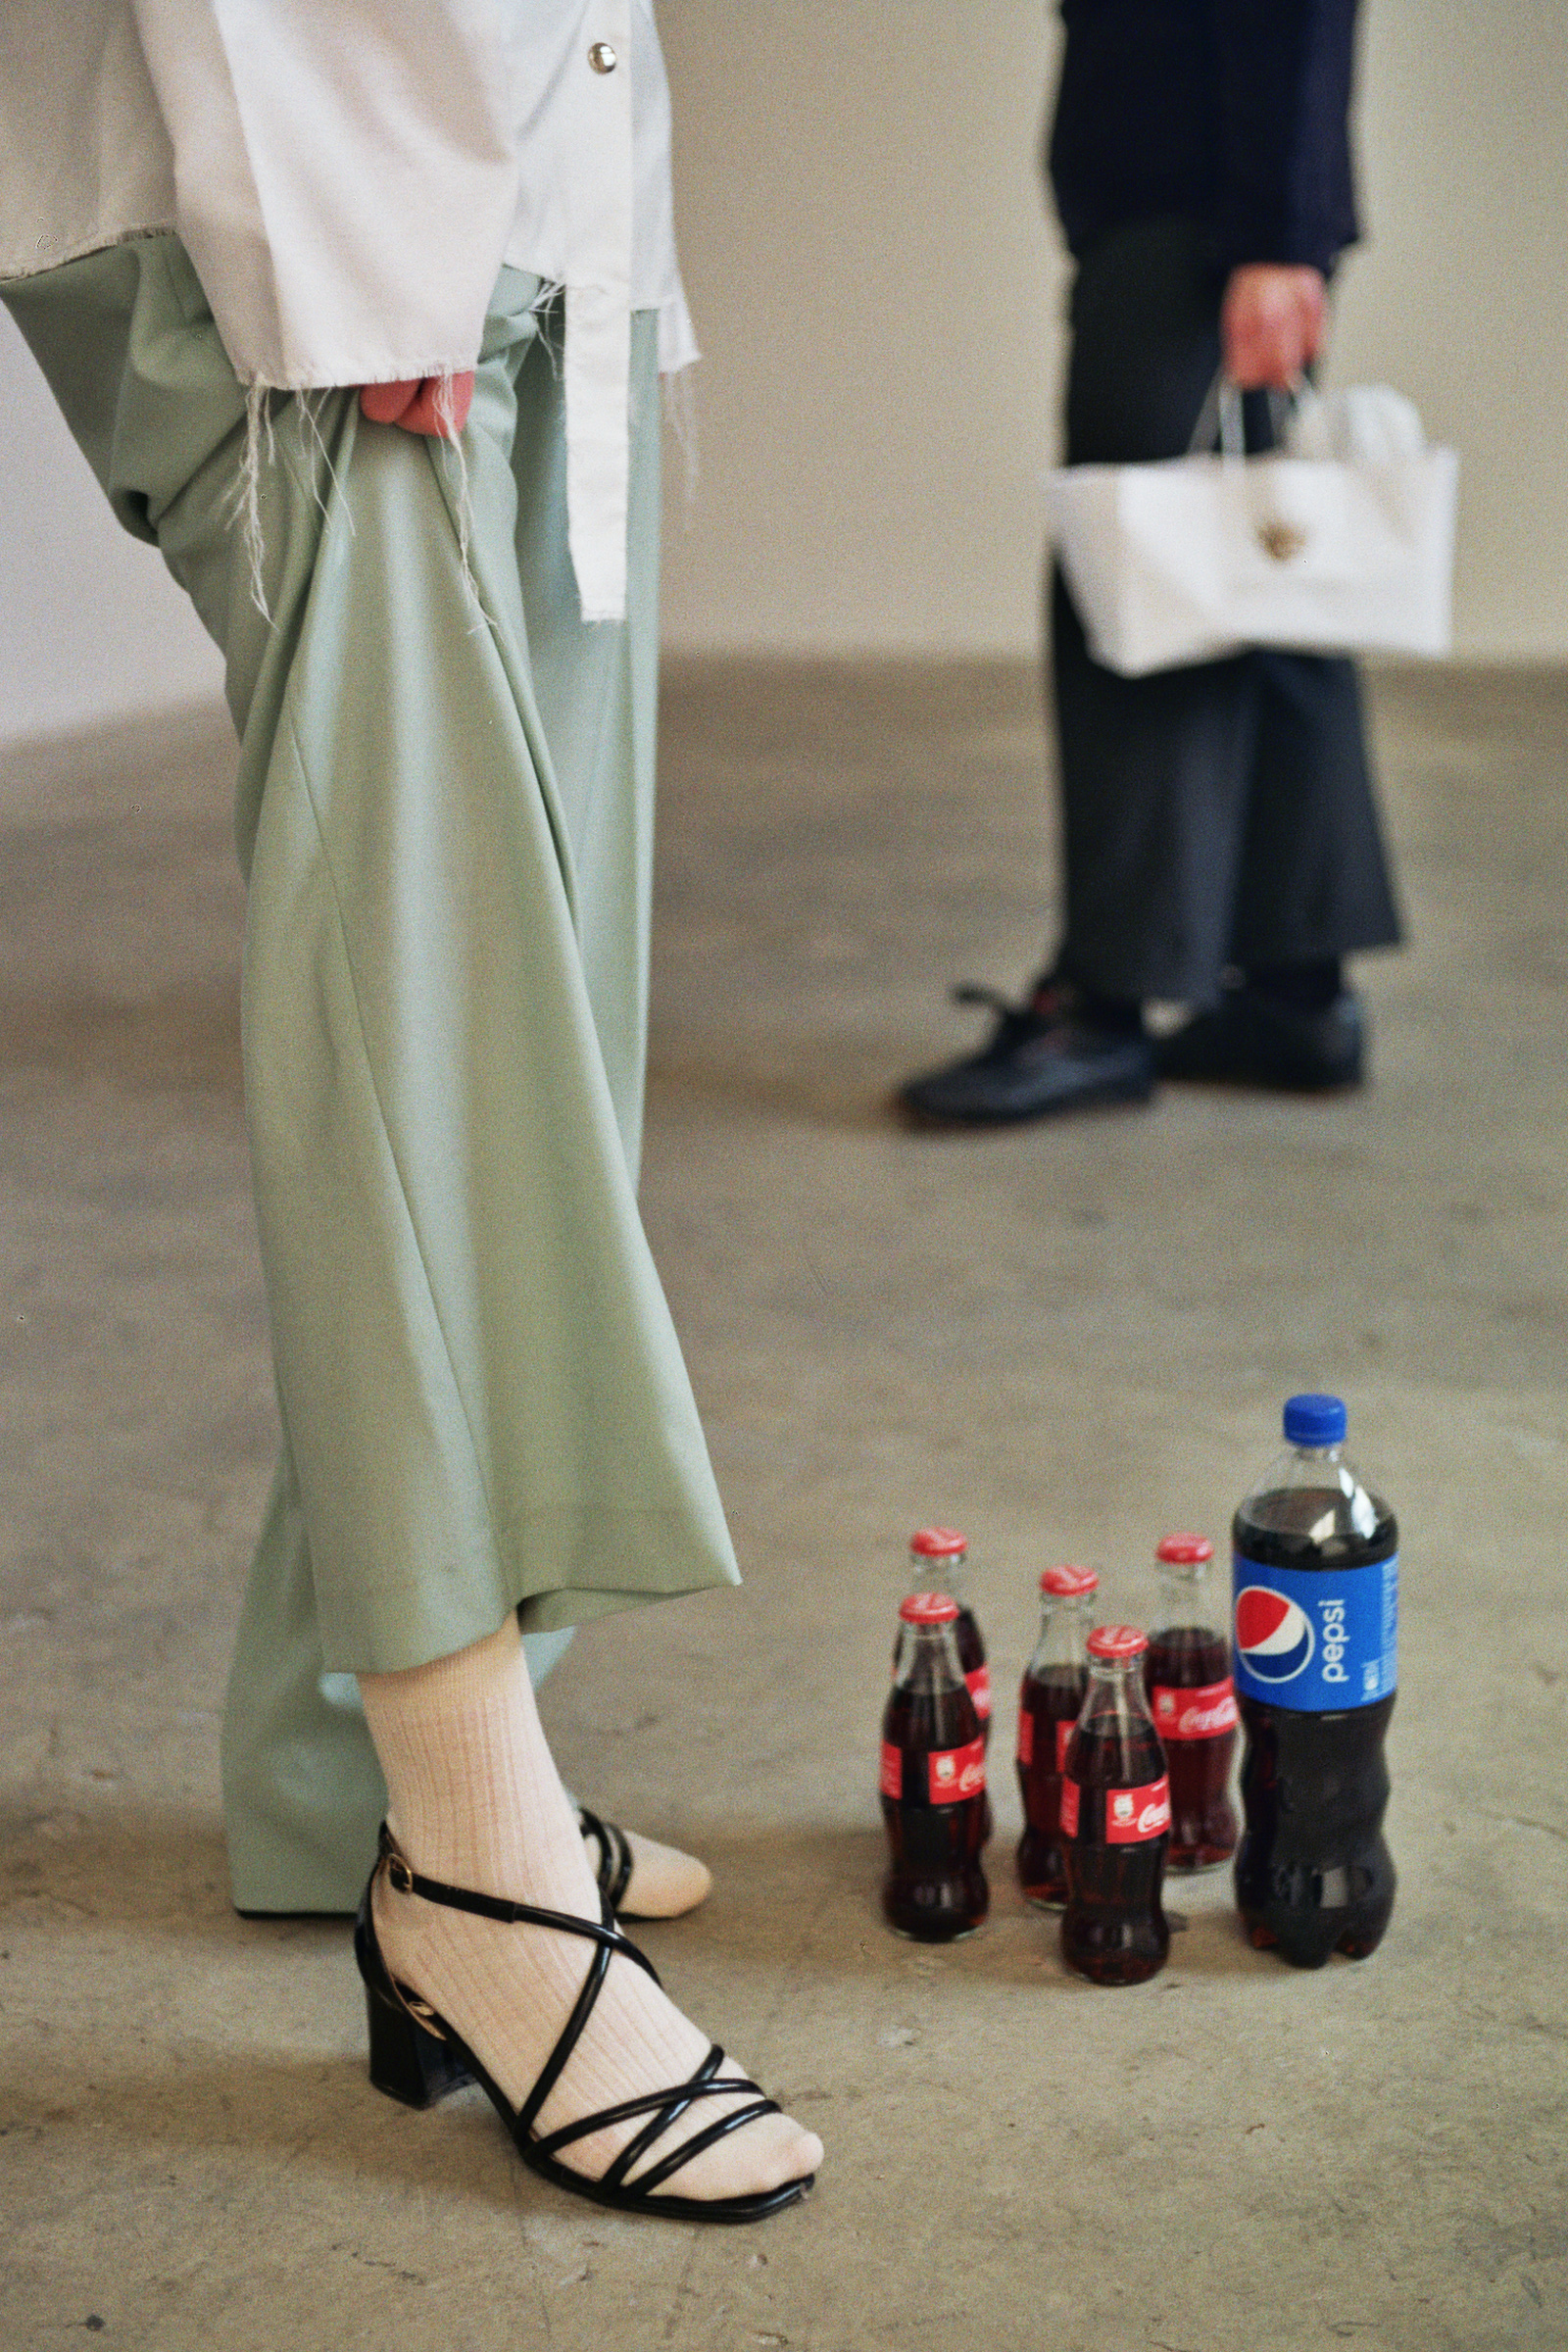 White organza shirt: Traffico, light wool trousers: Pence1979, socks: Maria La Rosa, sandals: stylist own.  Art piece: Rebel Rebel   1lt of Pepsi in 5 bottles of Coca - Cola and 1lt of Coca-Cola in one bottle of Pepsi  Artist: Roberto Fassone